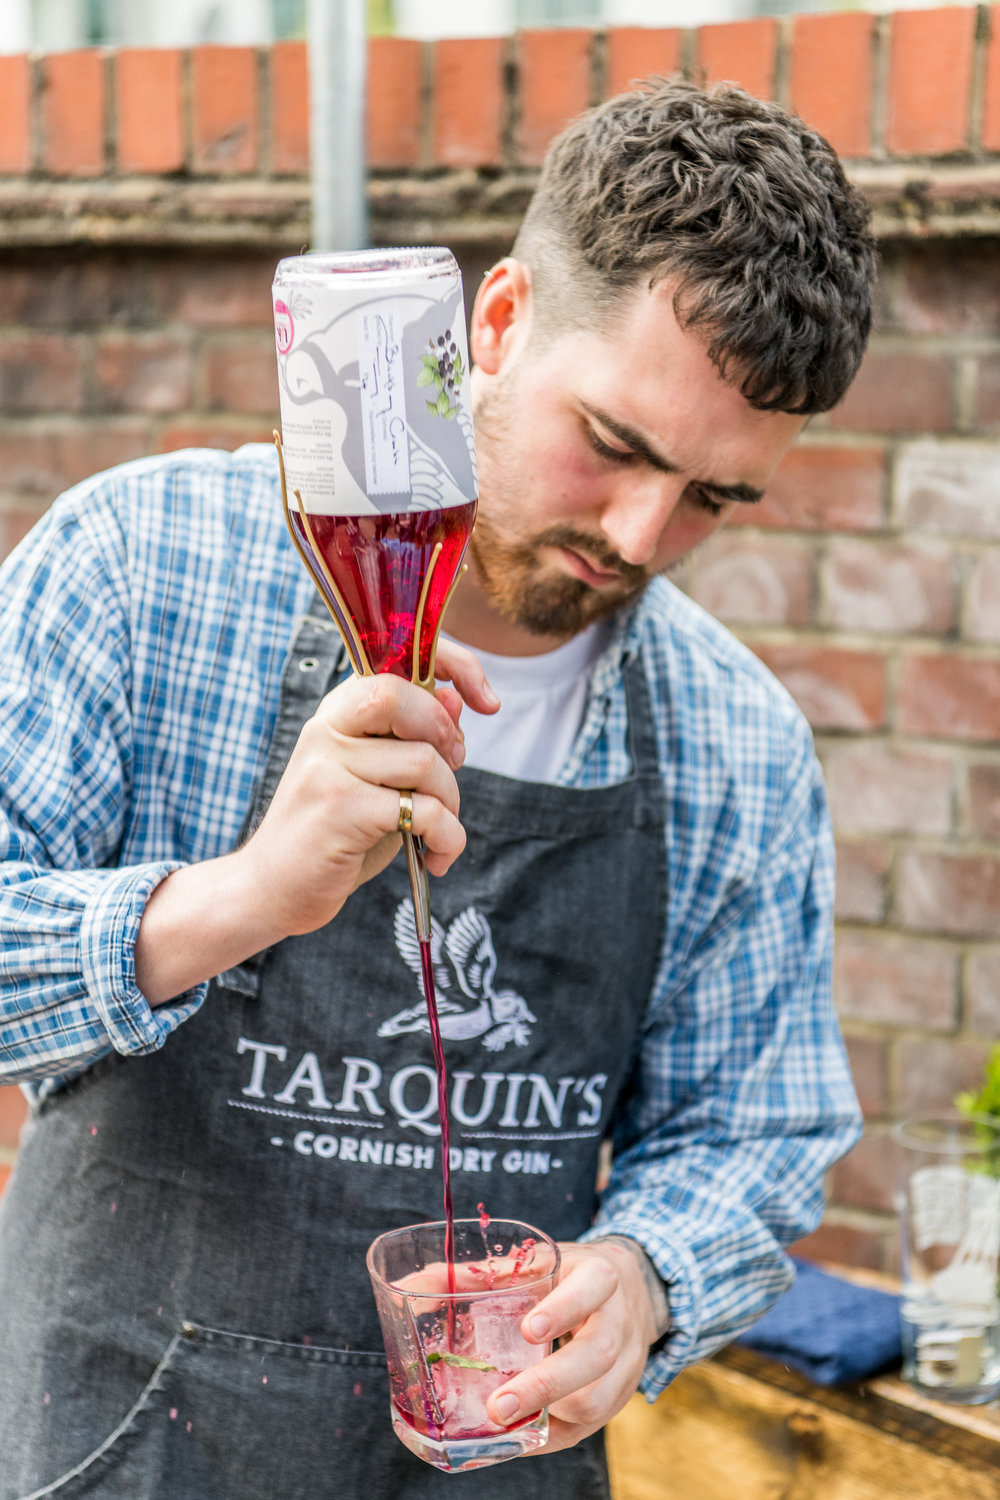 Tarquin's Gin -